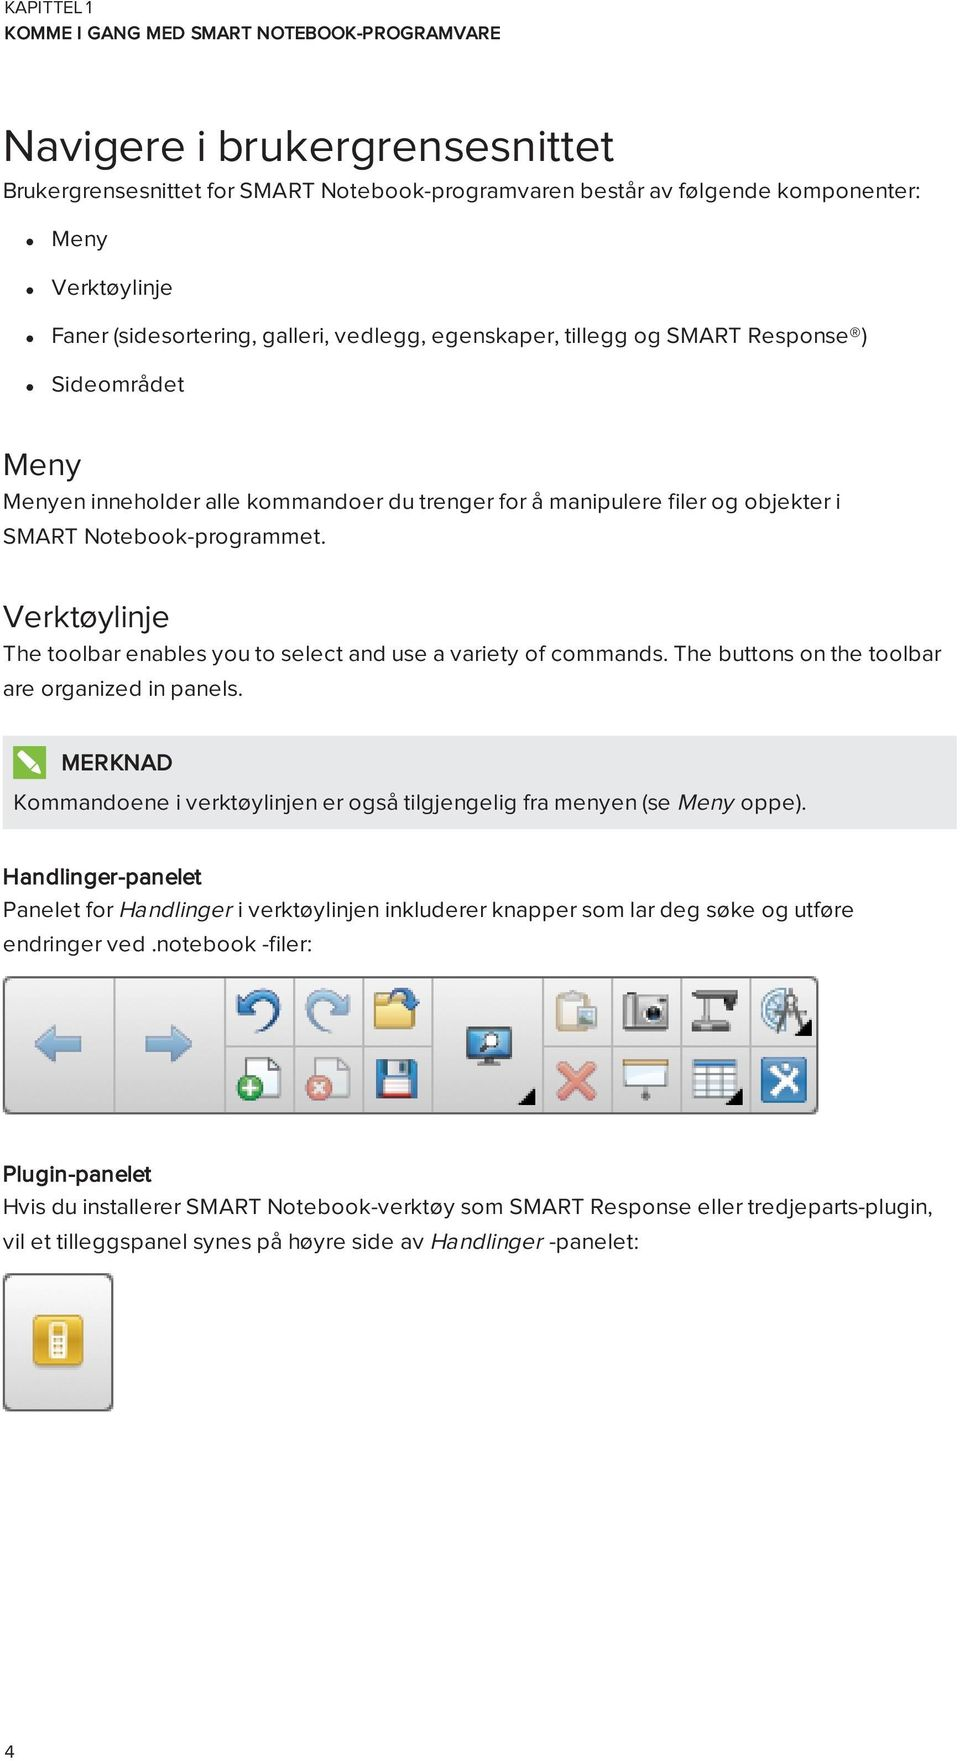 Verktøylinje The tlbar enables yu t select and use a variety f cmmands. The buttns n the tlbar are rganized in panels. Kmmandene i verktøylinjen er gså tilgjengelig fra menyen (se Meny ppe).